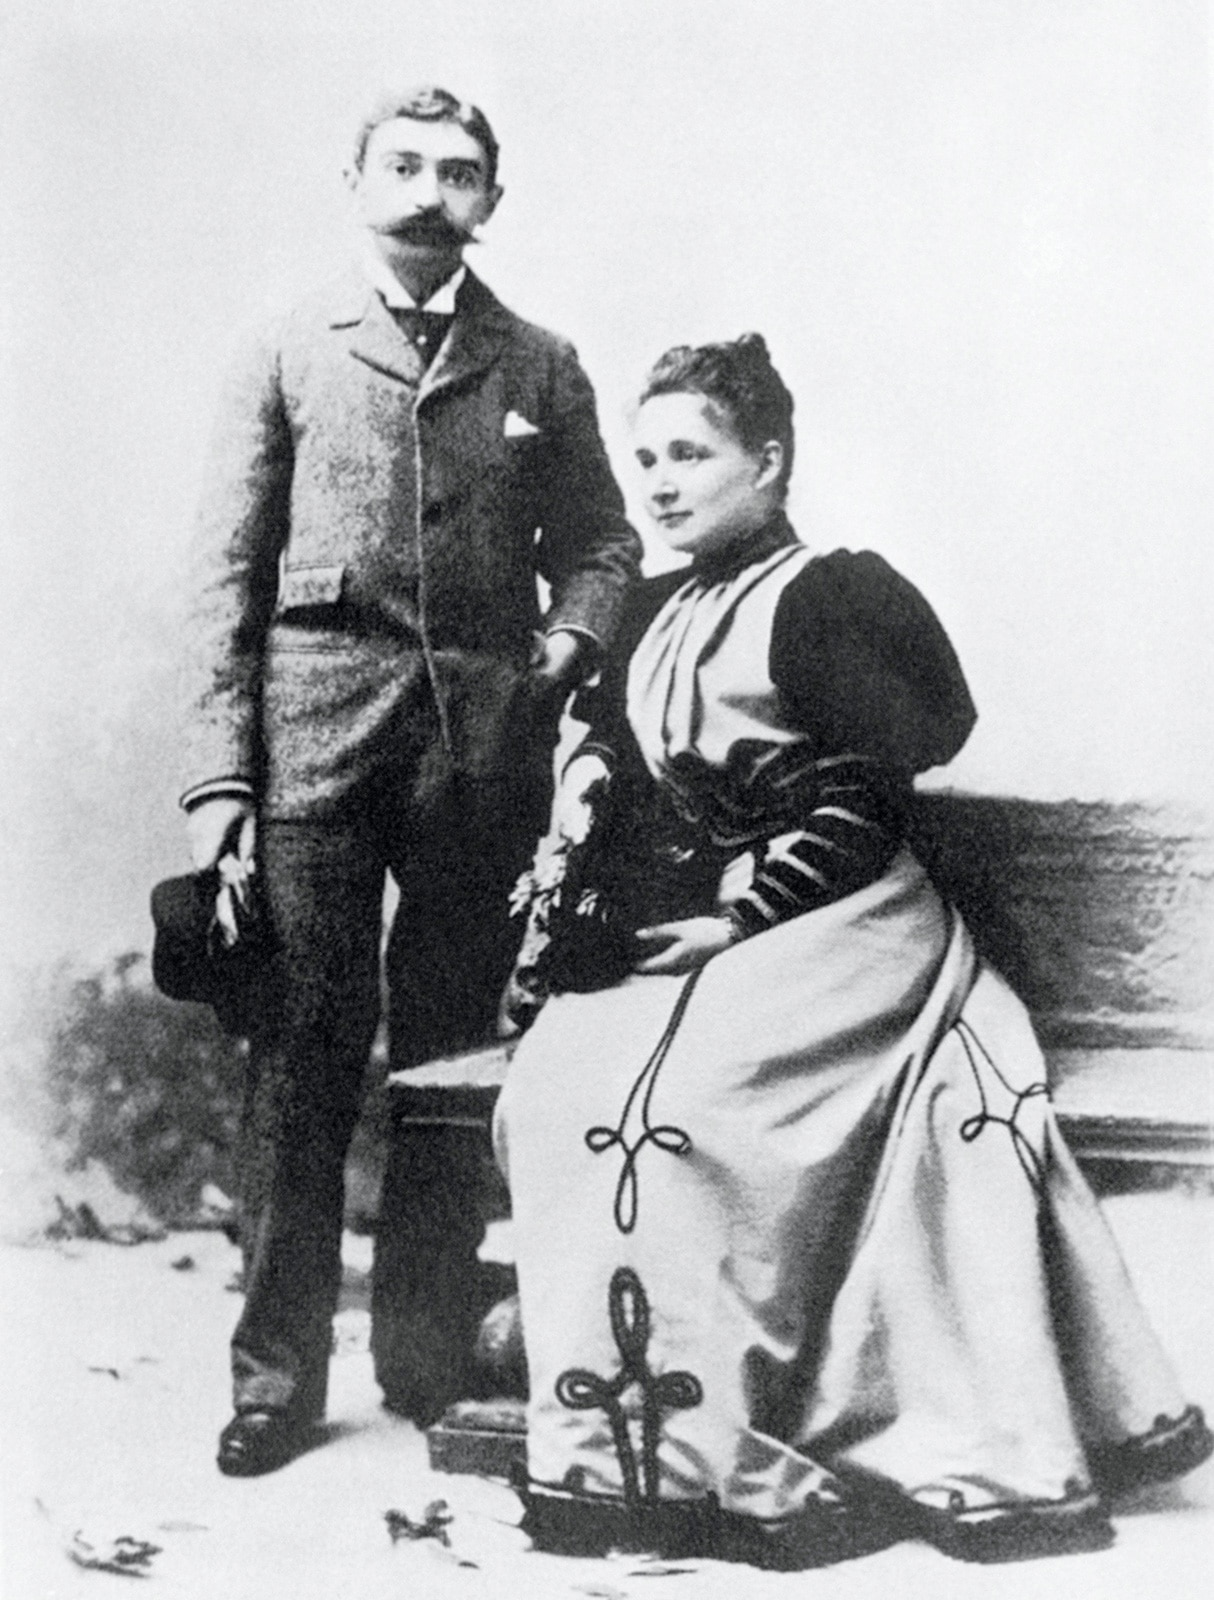 Baron Pierre de COUBERTIN and Marie ROTHAN on their wedding day.